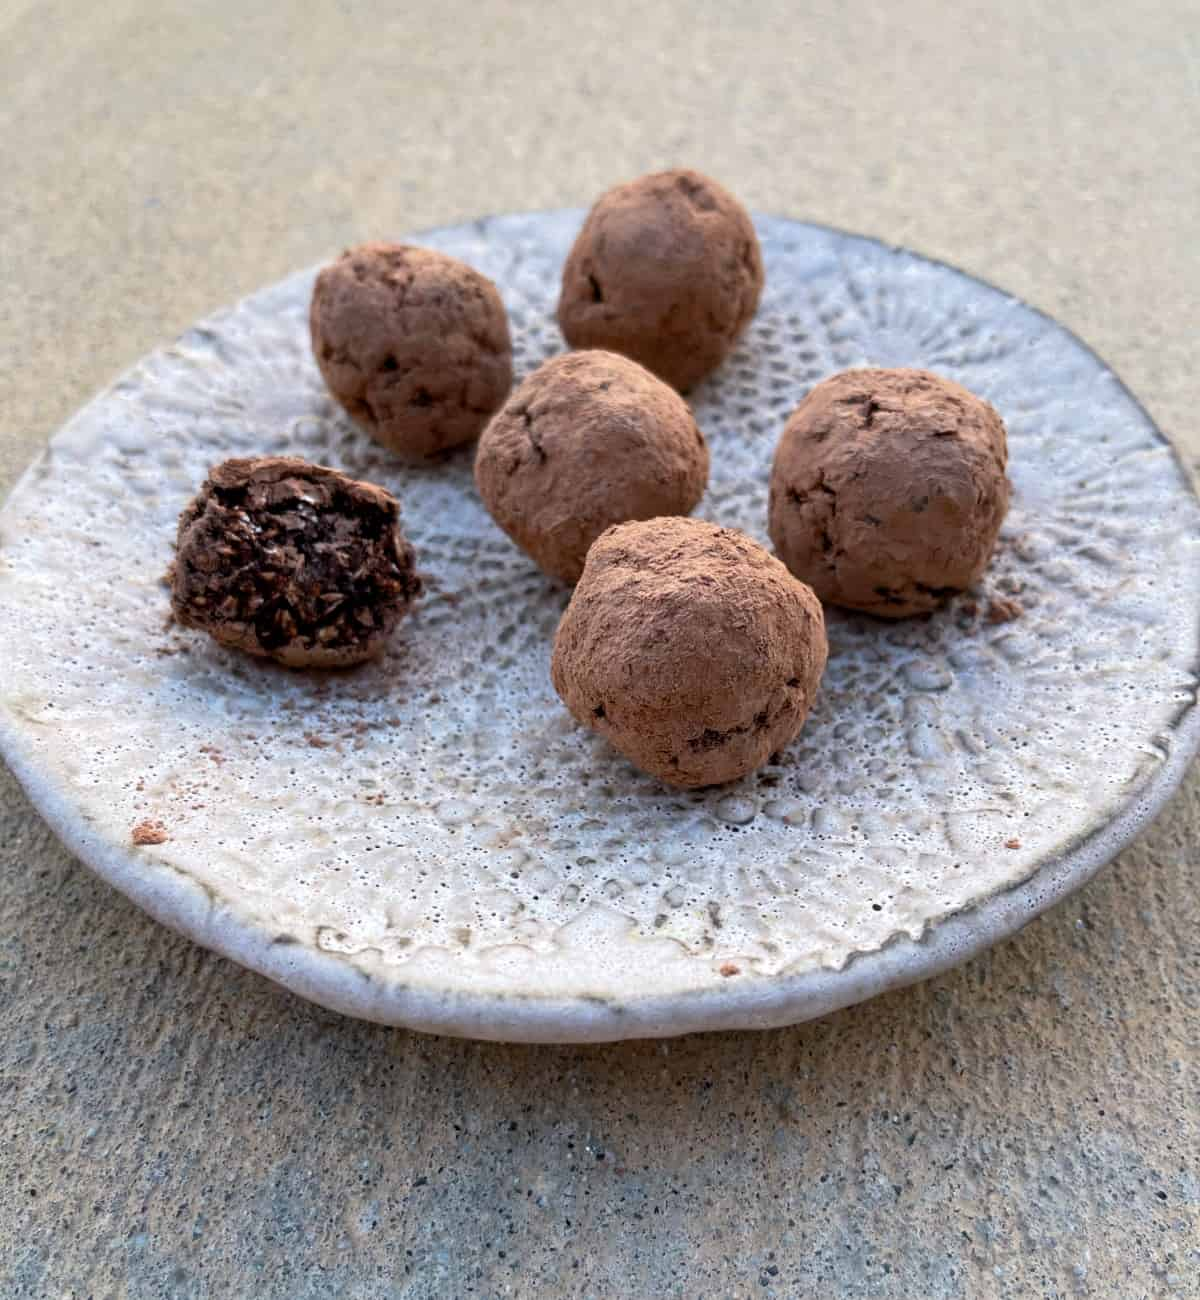 Cranberry chocolate truffles on ceramic plate with bite out of one truffle.